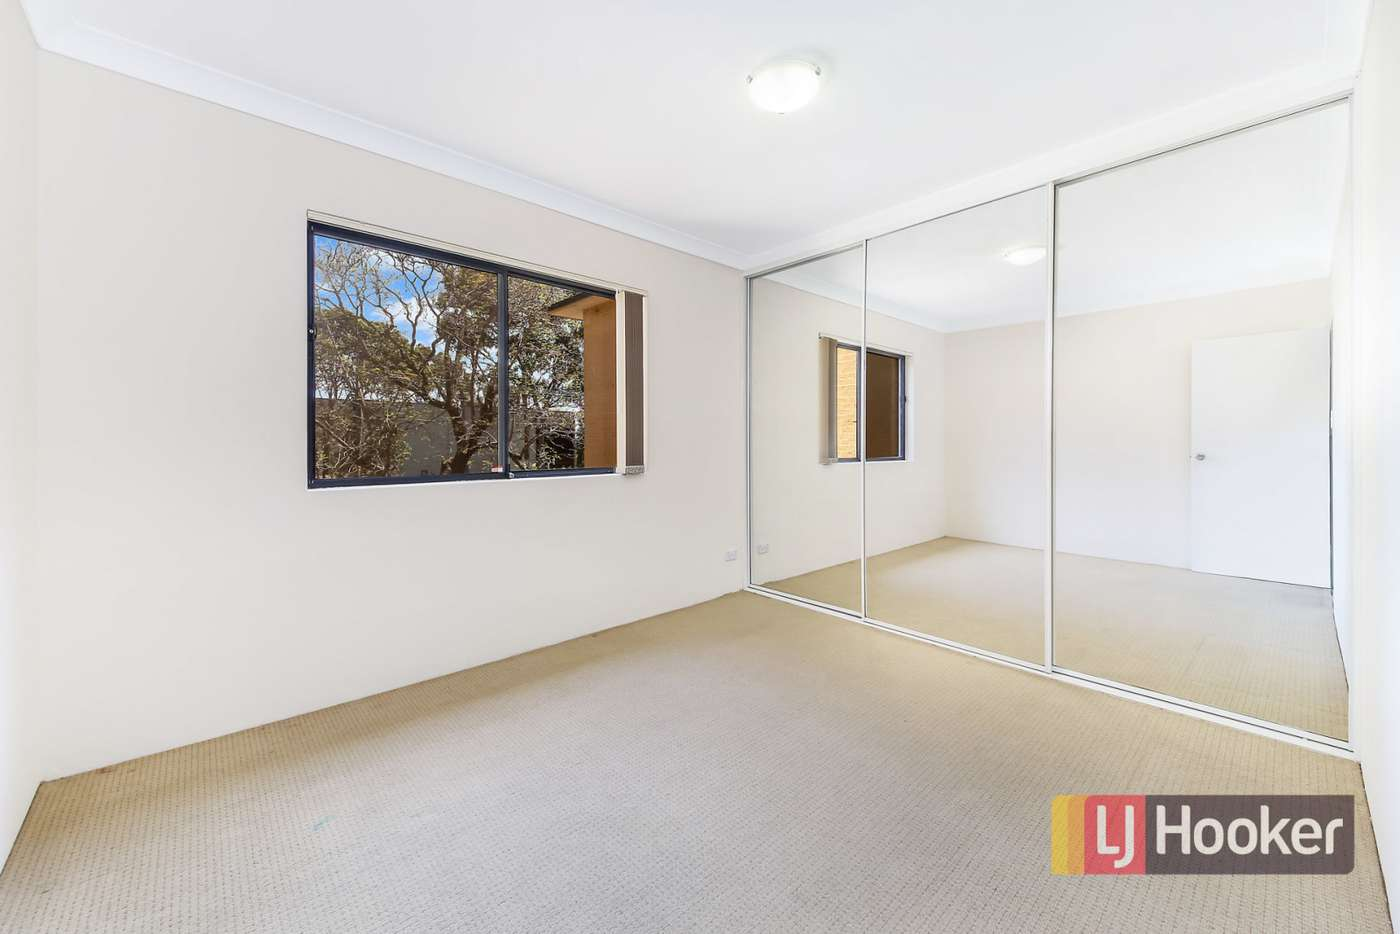 Fifth view of Homely apartment listing, 10/82-84 Beaconsfield St, Silverwater NSW 2128